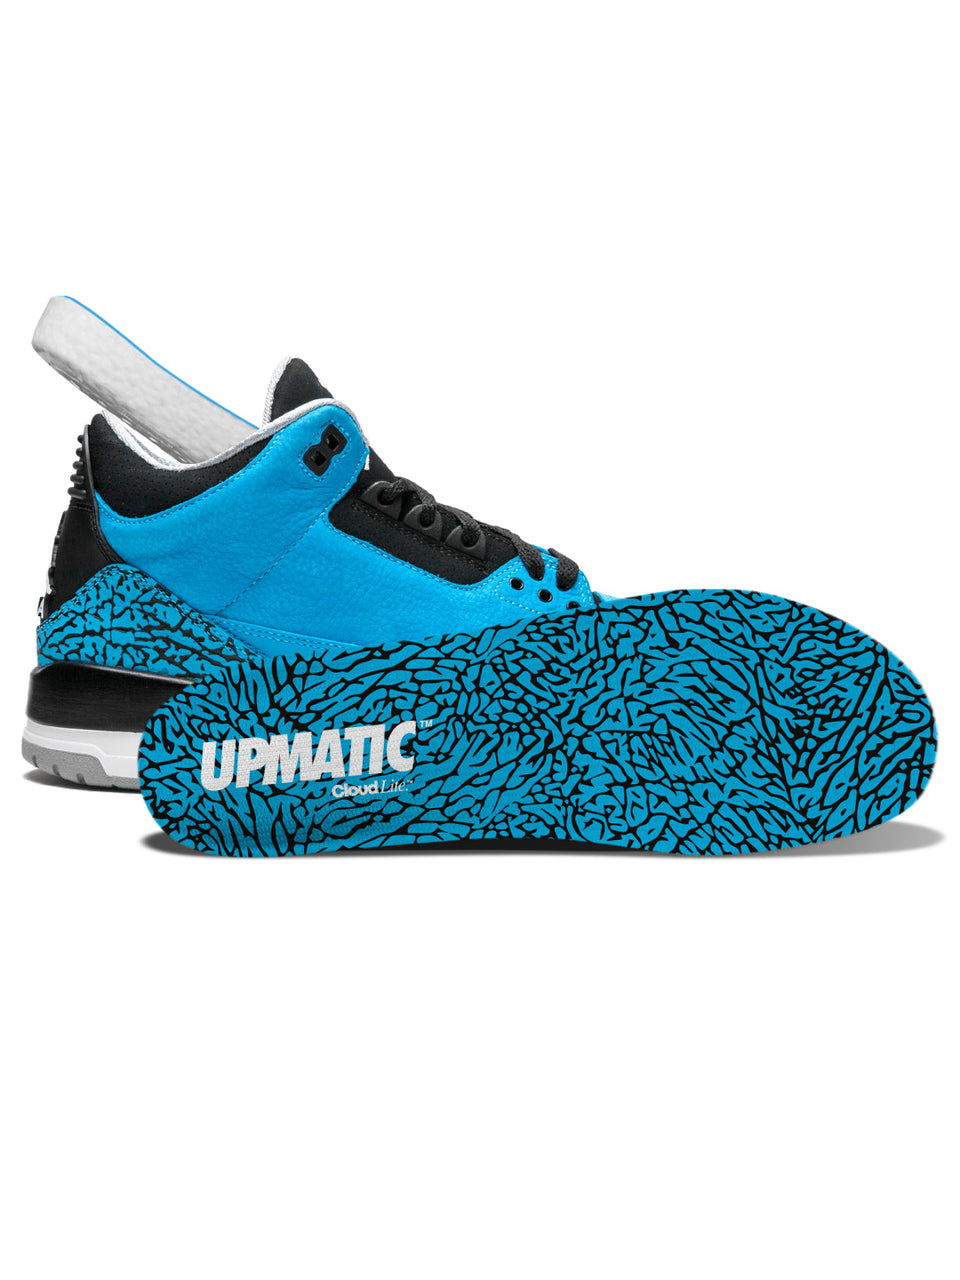 UPMATIC Cloudlite Supercharged Insoles 1988 Grey Elephant Limited Edition